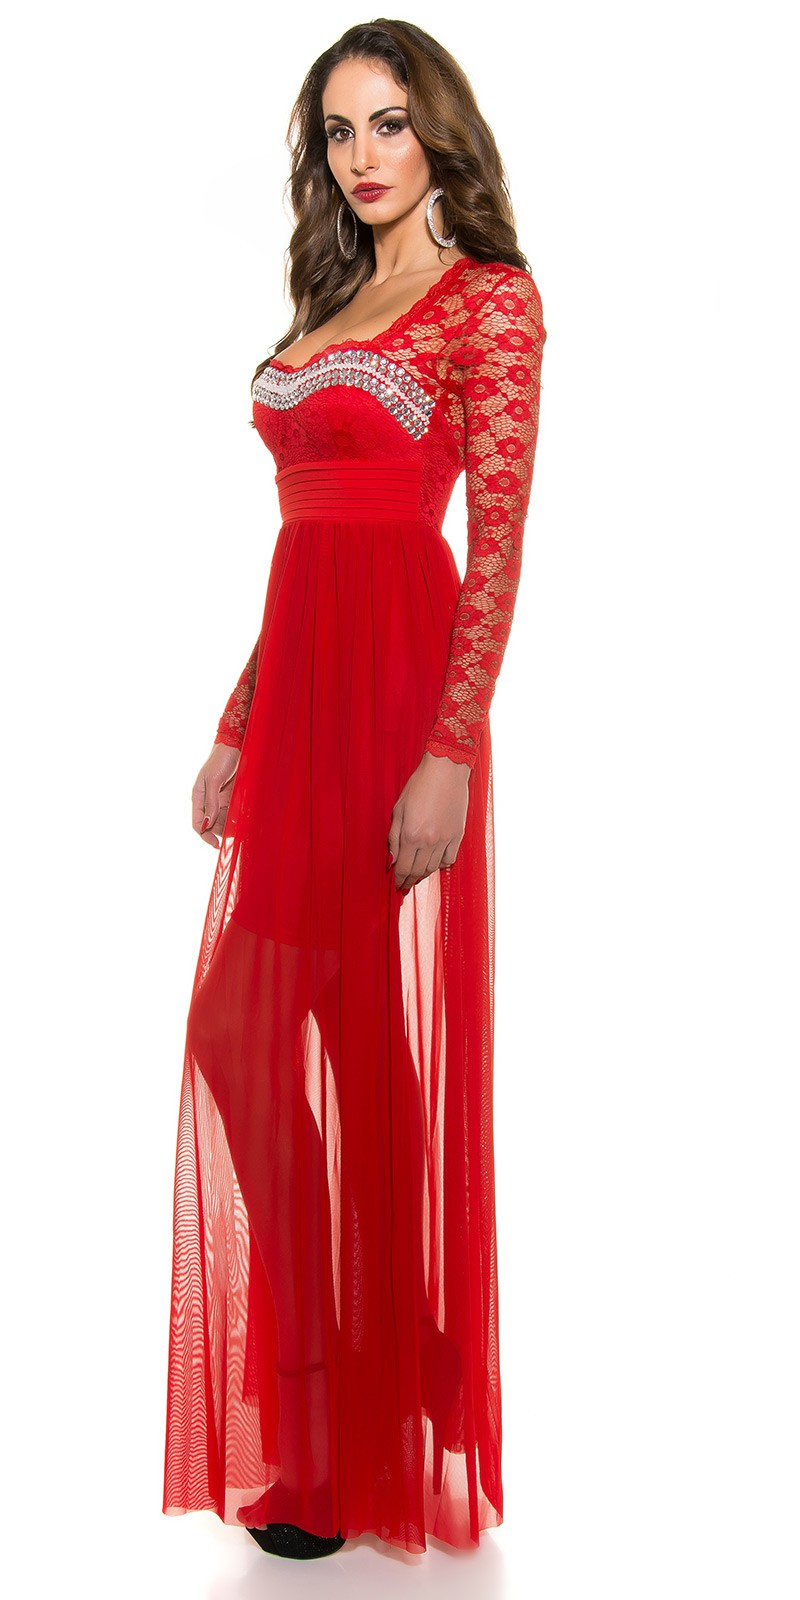 ooKoucla evening dress with lace  Color RED Size S 0000K9141 ROT 10.  ooKoucla evening dress with lace  Color RED Size S 0000K9141 ROT 11 838531395d8